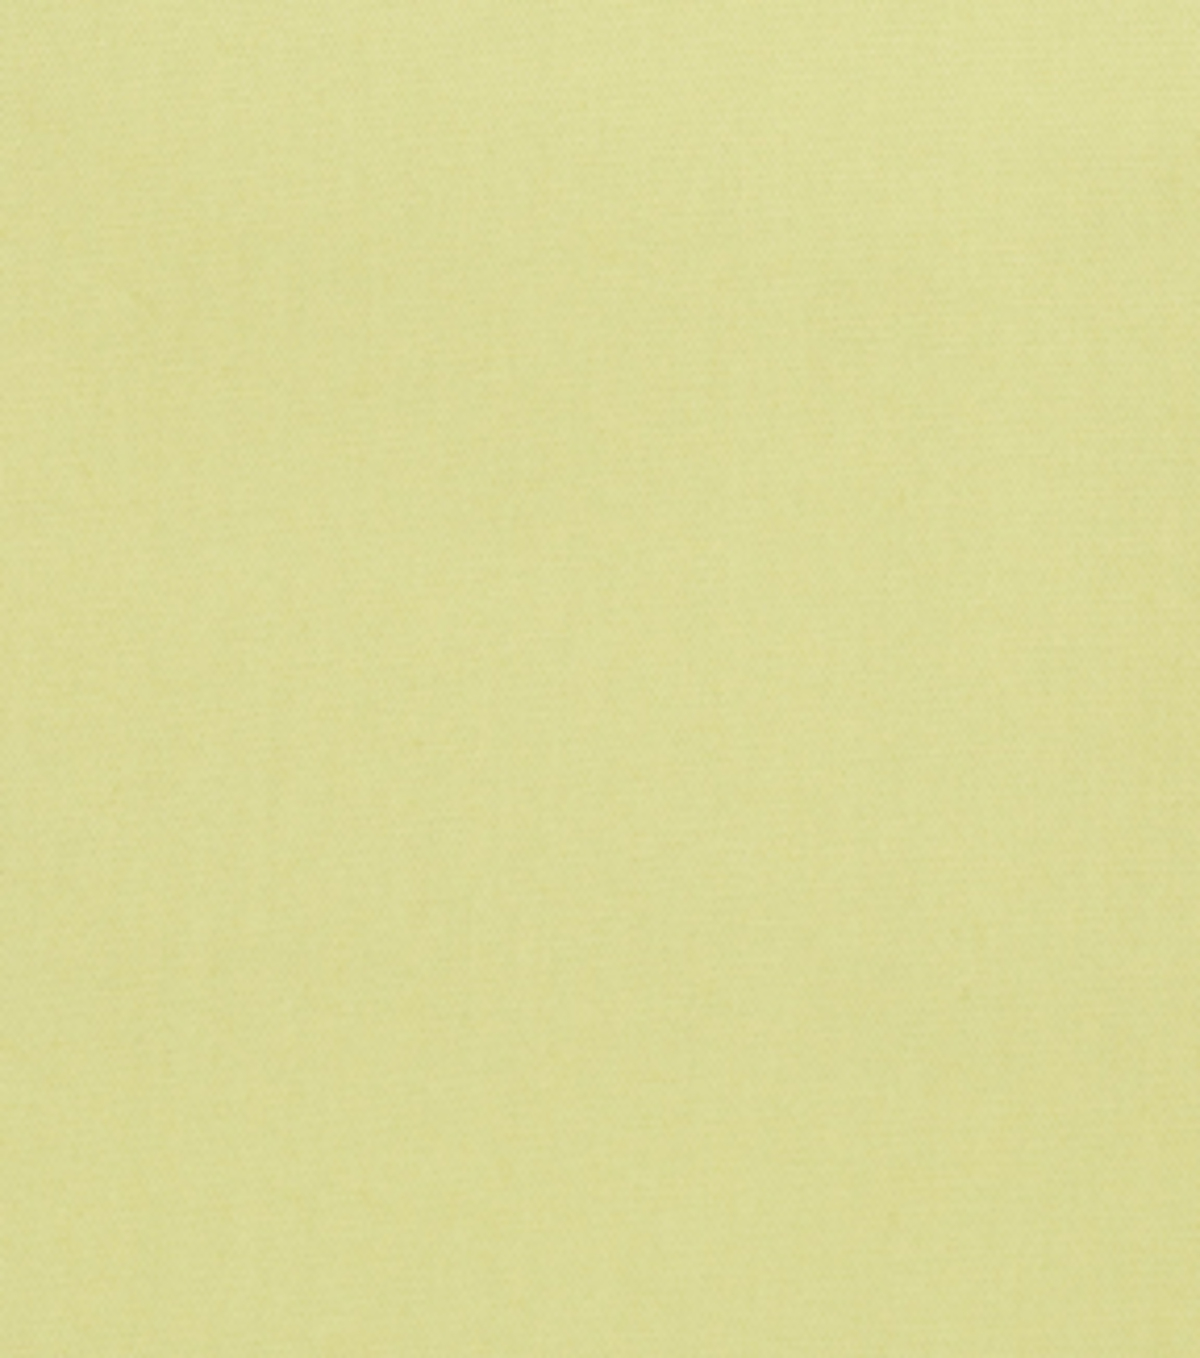 Home Decor 8\u0022x8\u0022 Fabric Swatch-Signature Series Legacy Cotton Chartreuse